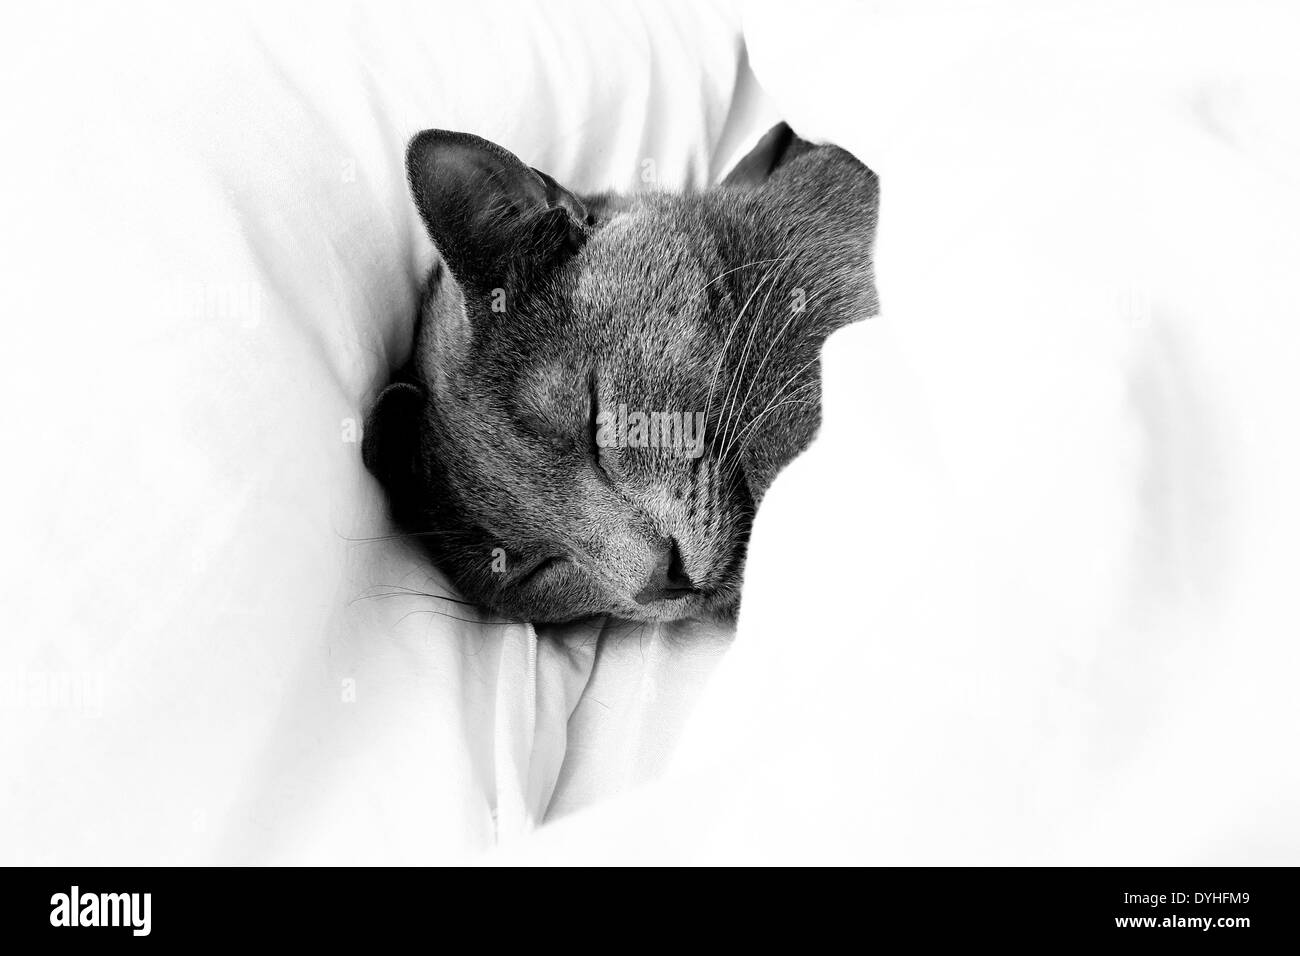 A gray cat sleeping in a bed under sheets - Stock Image